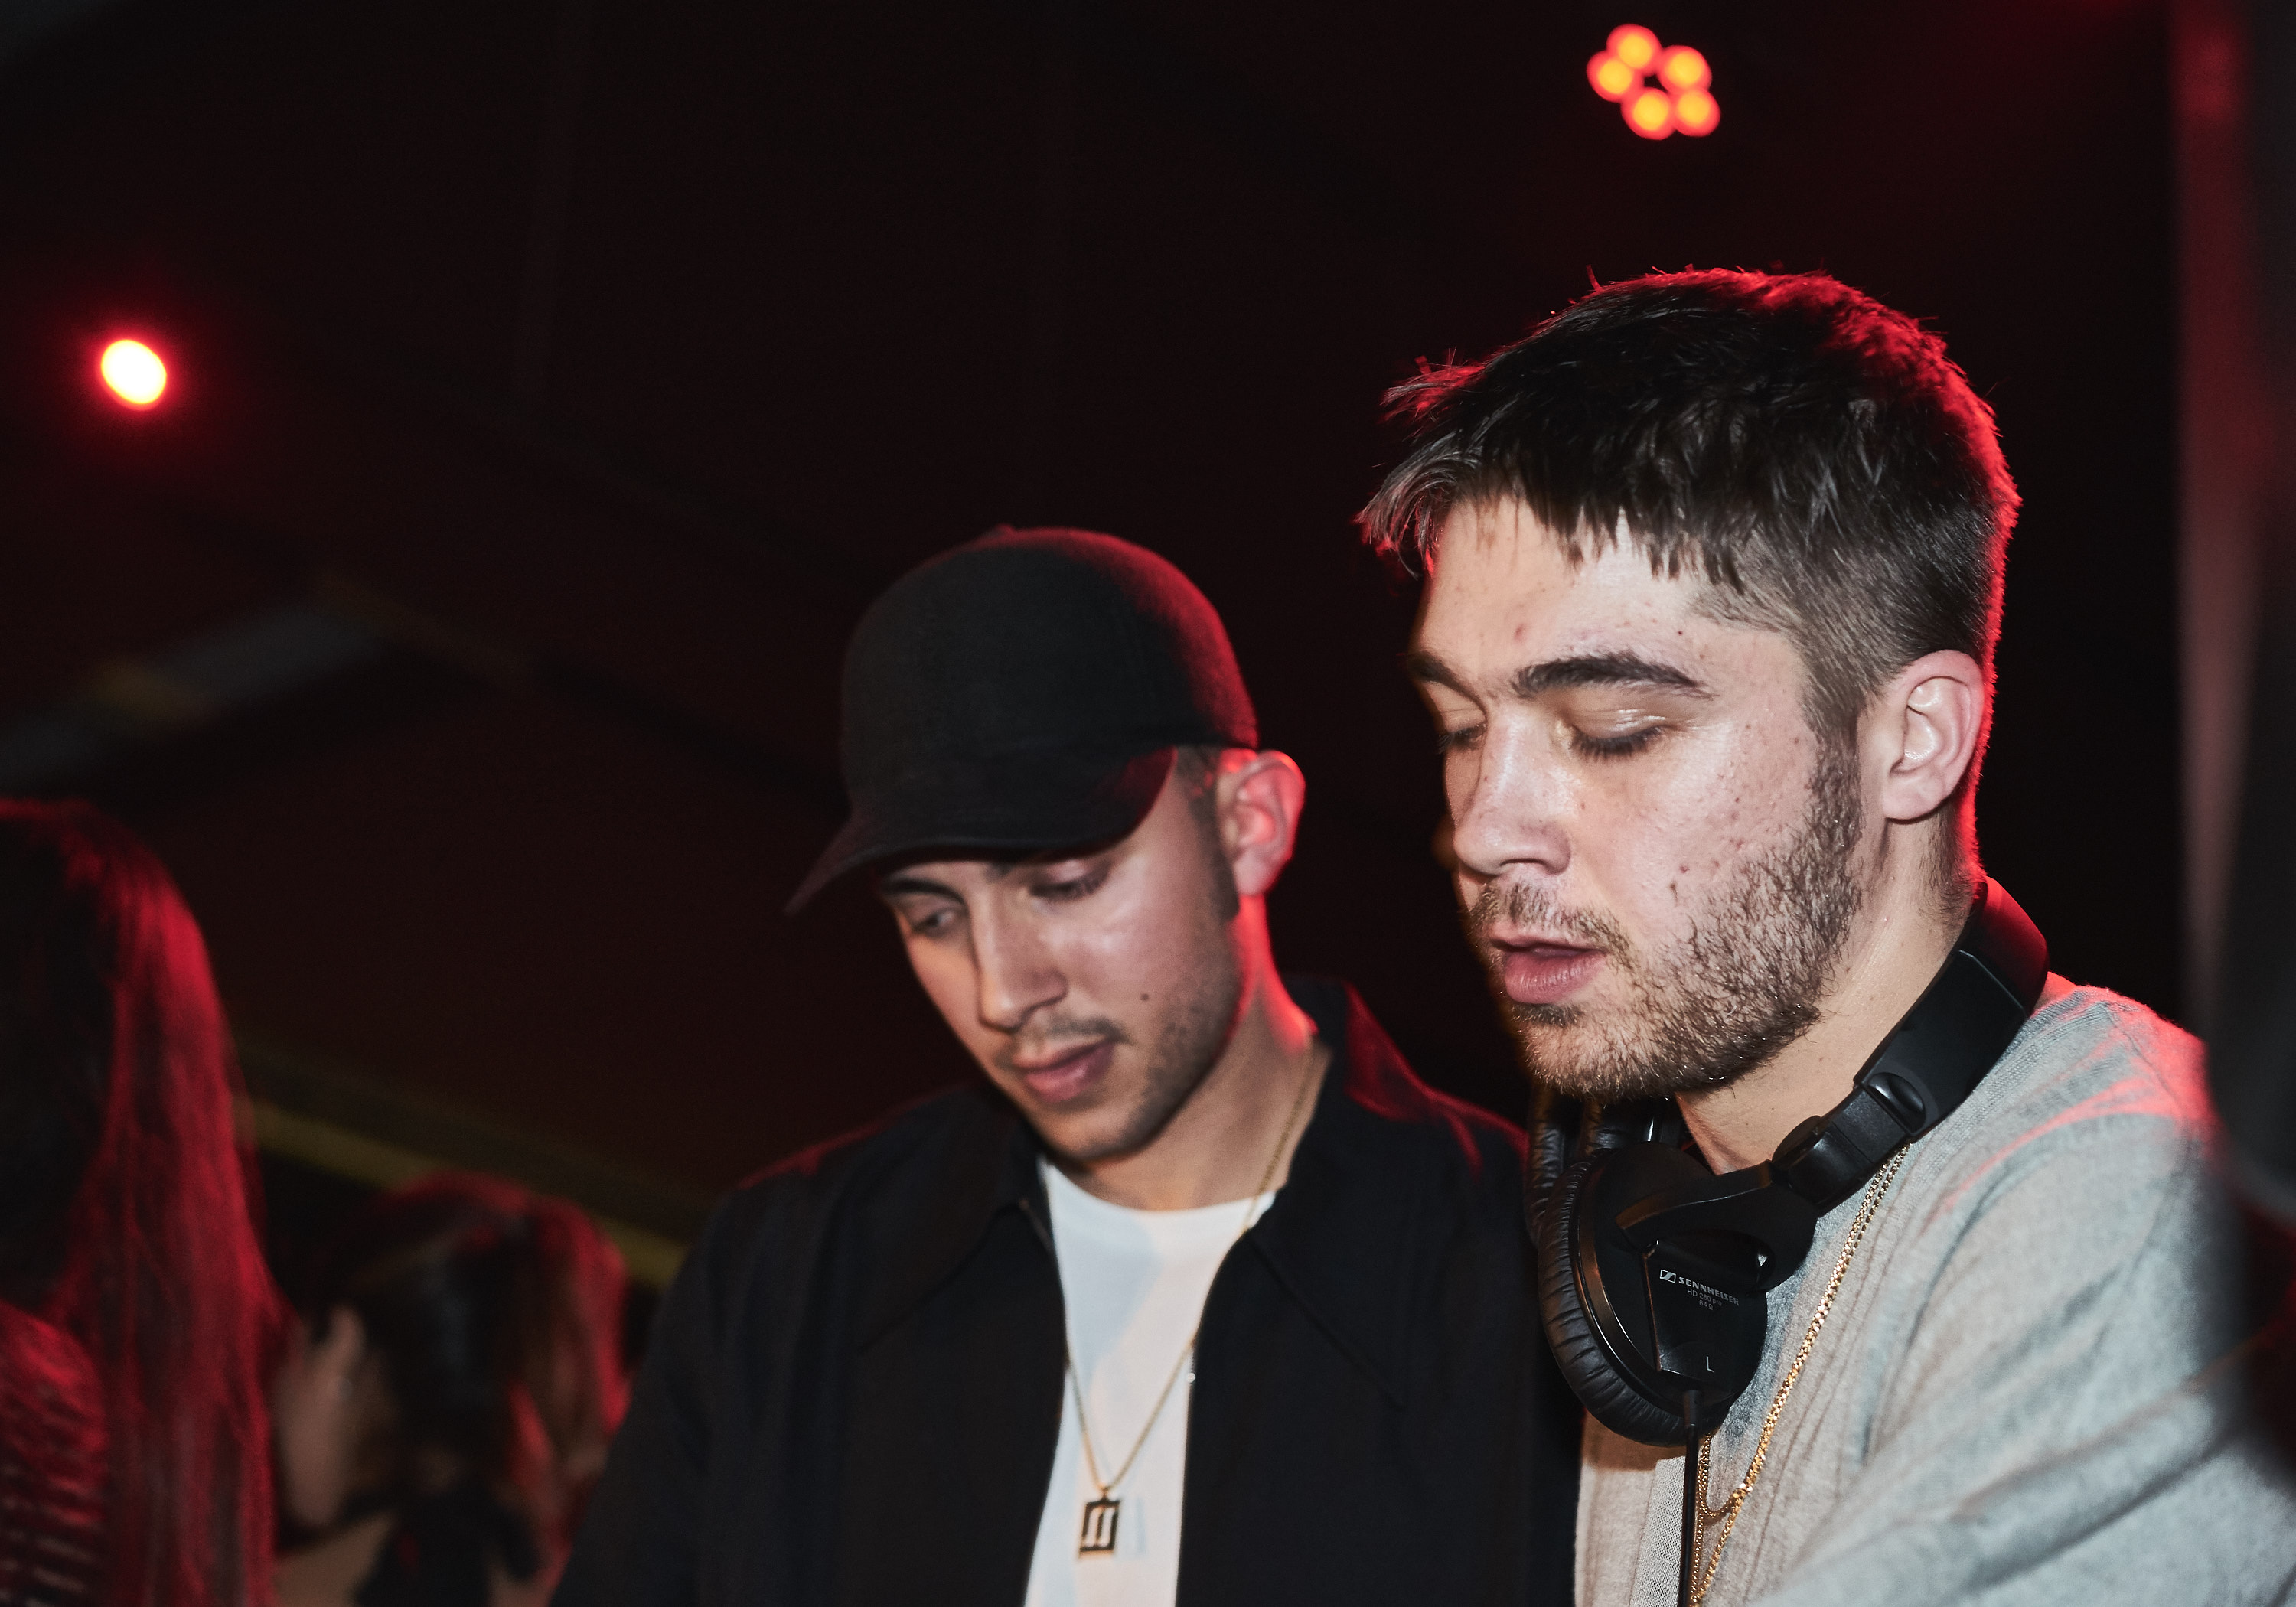 Majid_Jordan_wordintown_jayromero_photography_copyrights_sidebar_miami_wmc